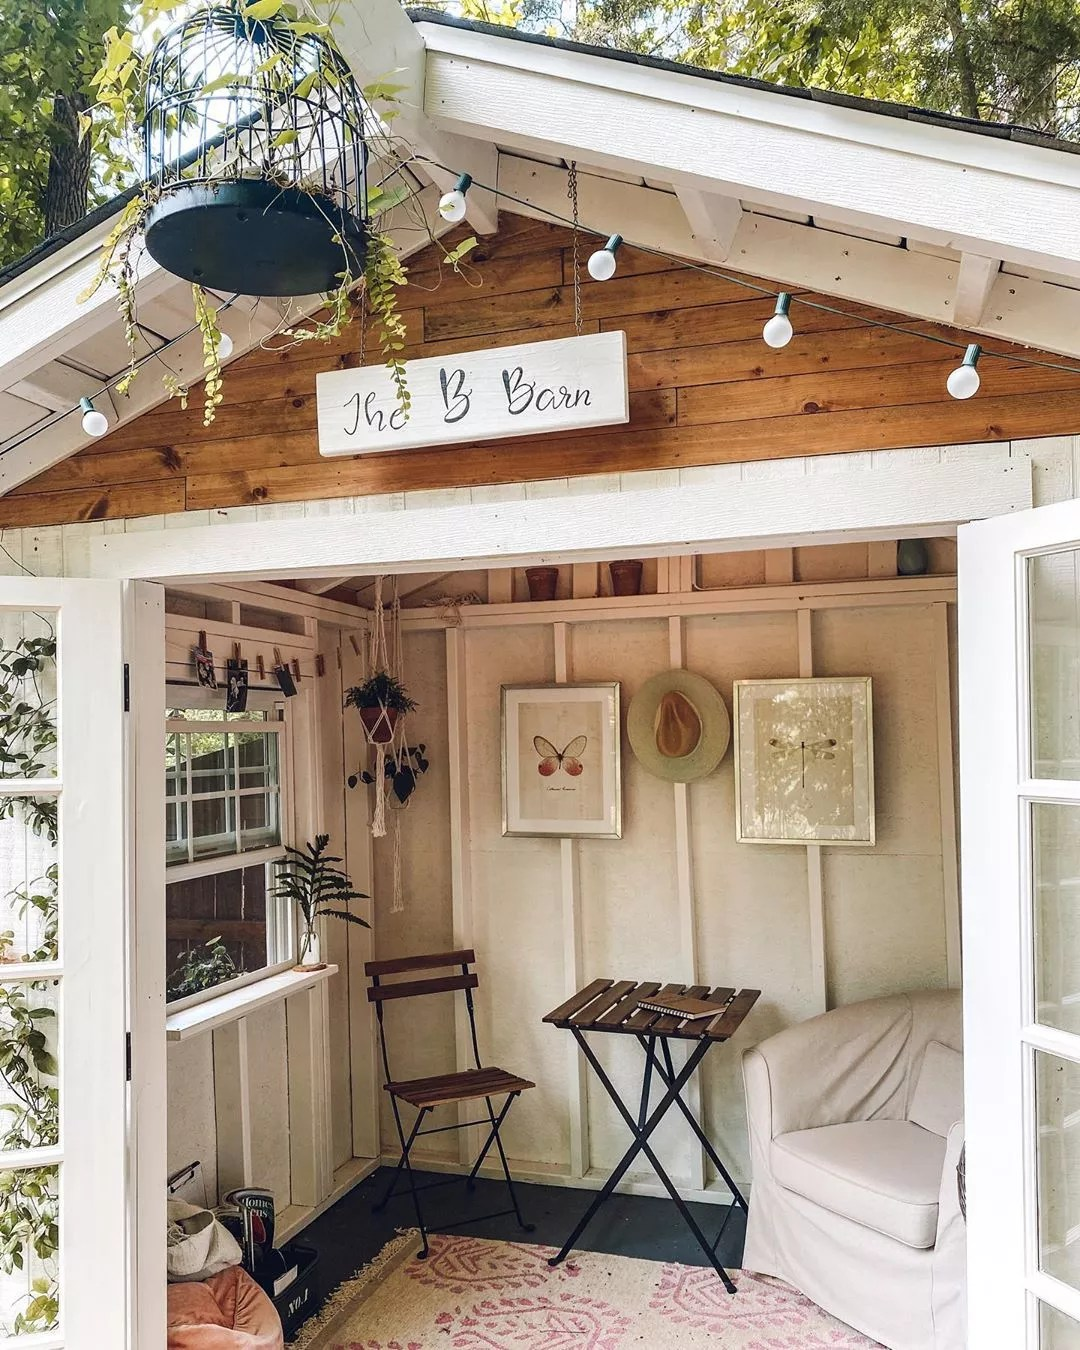 Small She Shed with a Soft Corner Chair and Sign Above the Door. Photo by Instagram user @theeverhopefulgardener